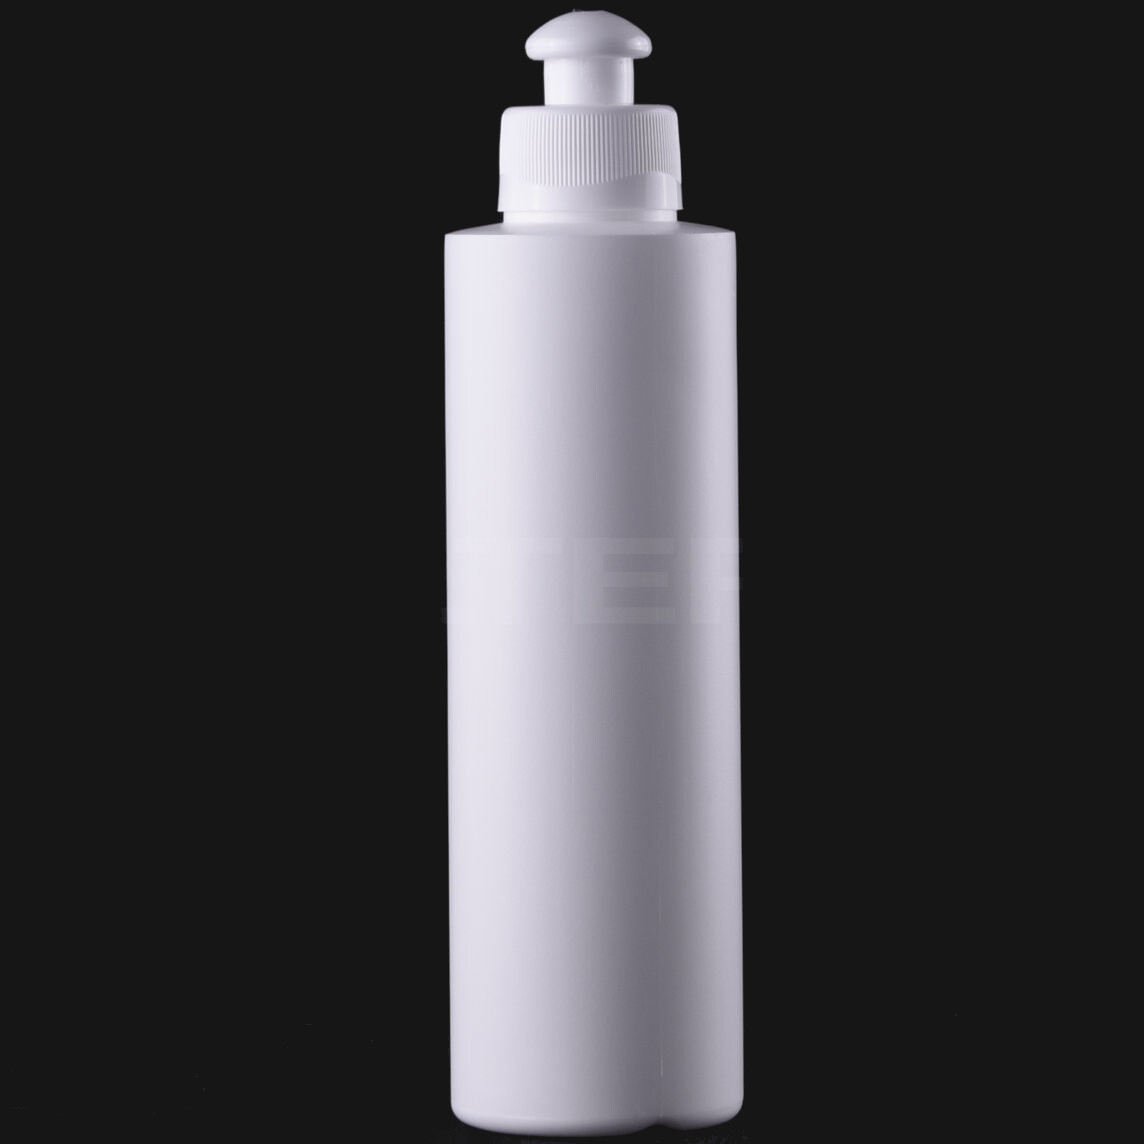 250 ml HDPE Bottle with 28 mm Push Pull Cap